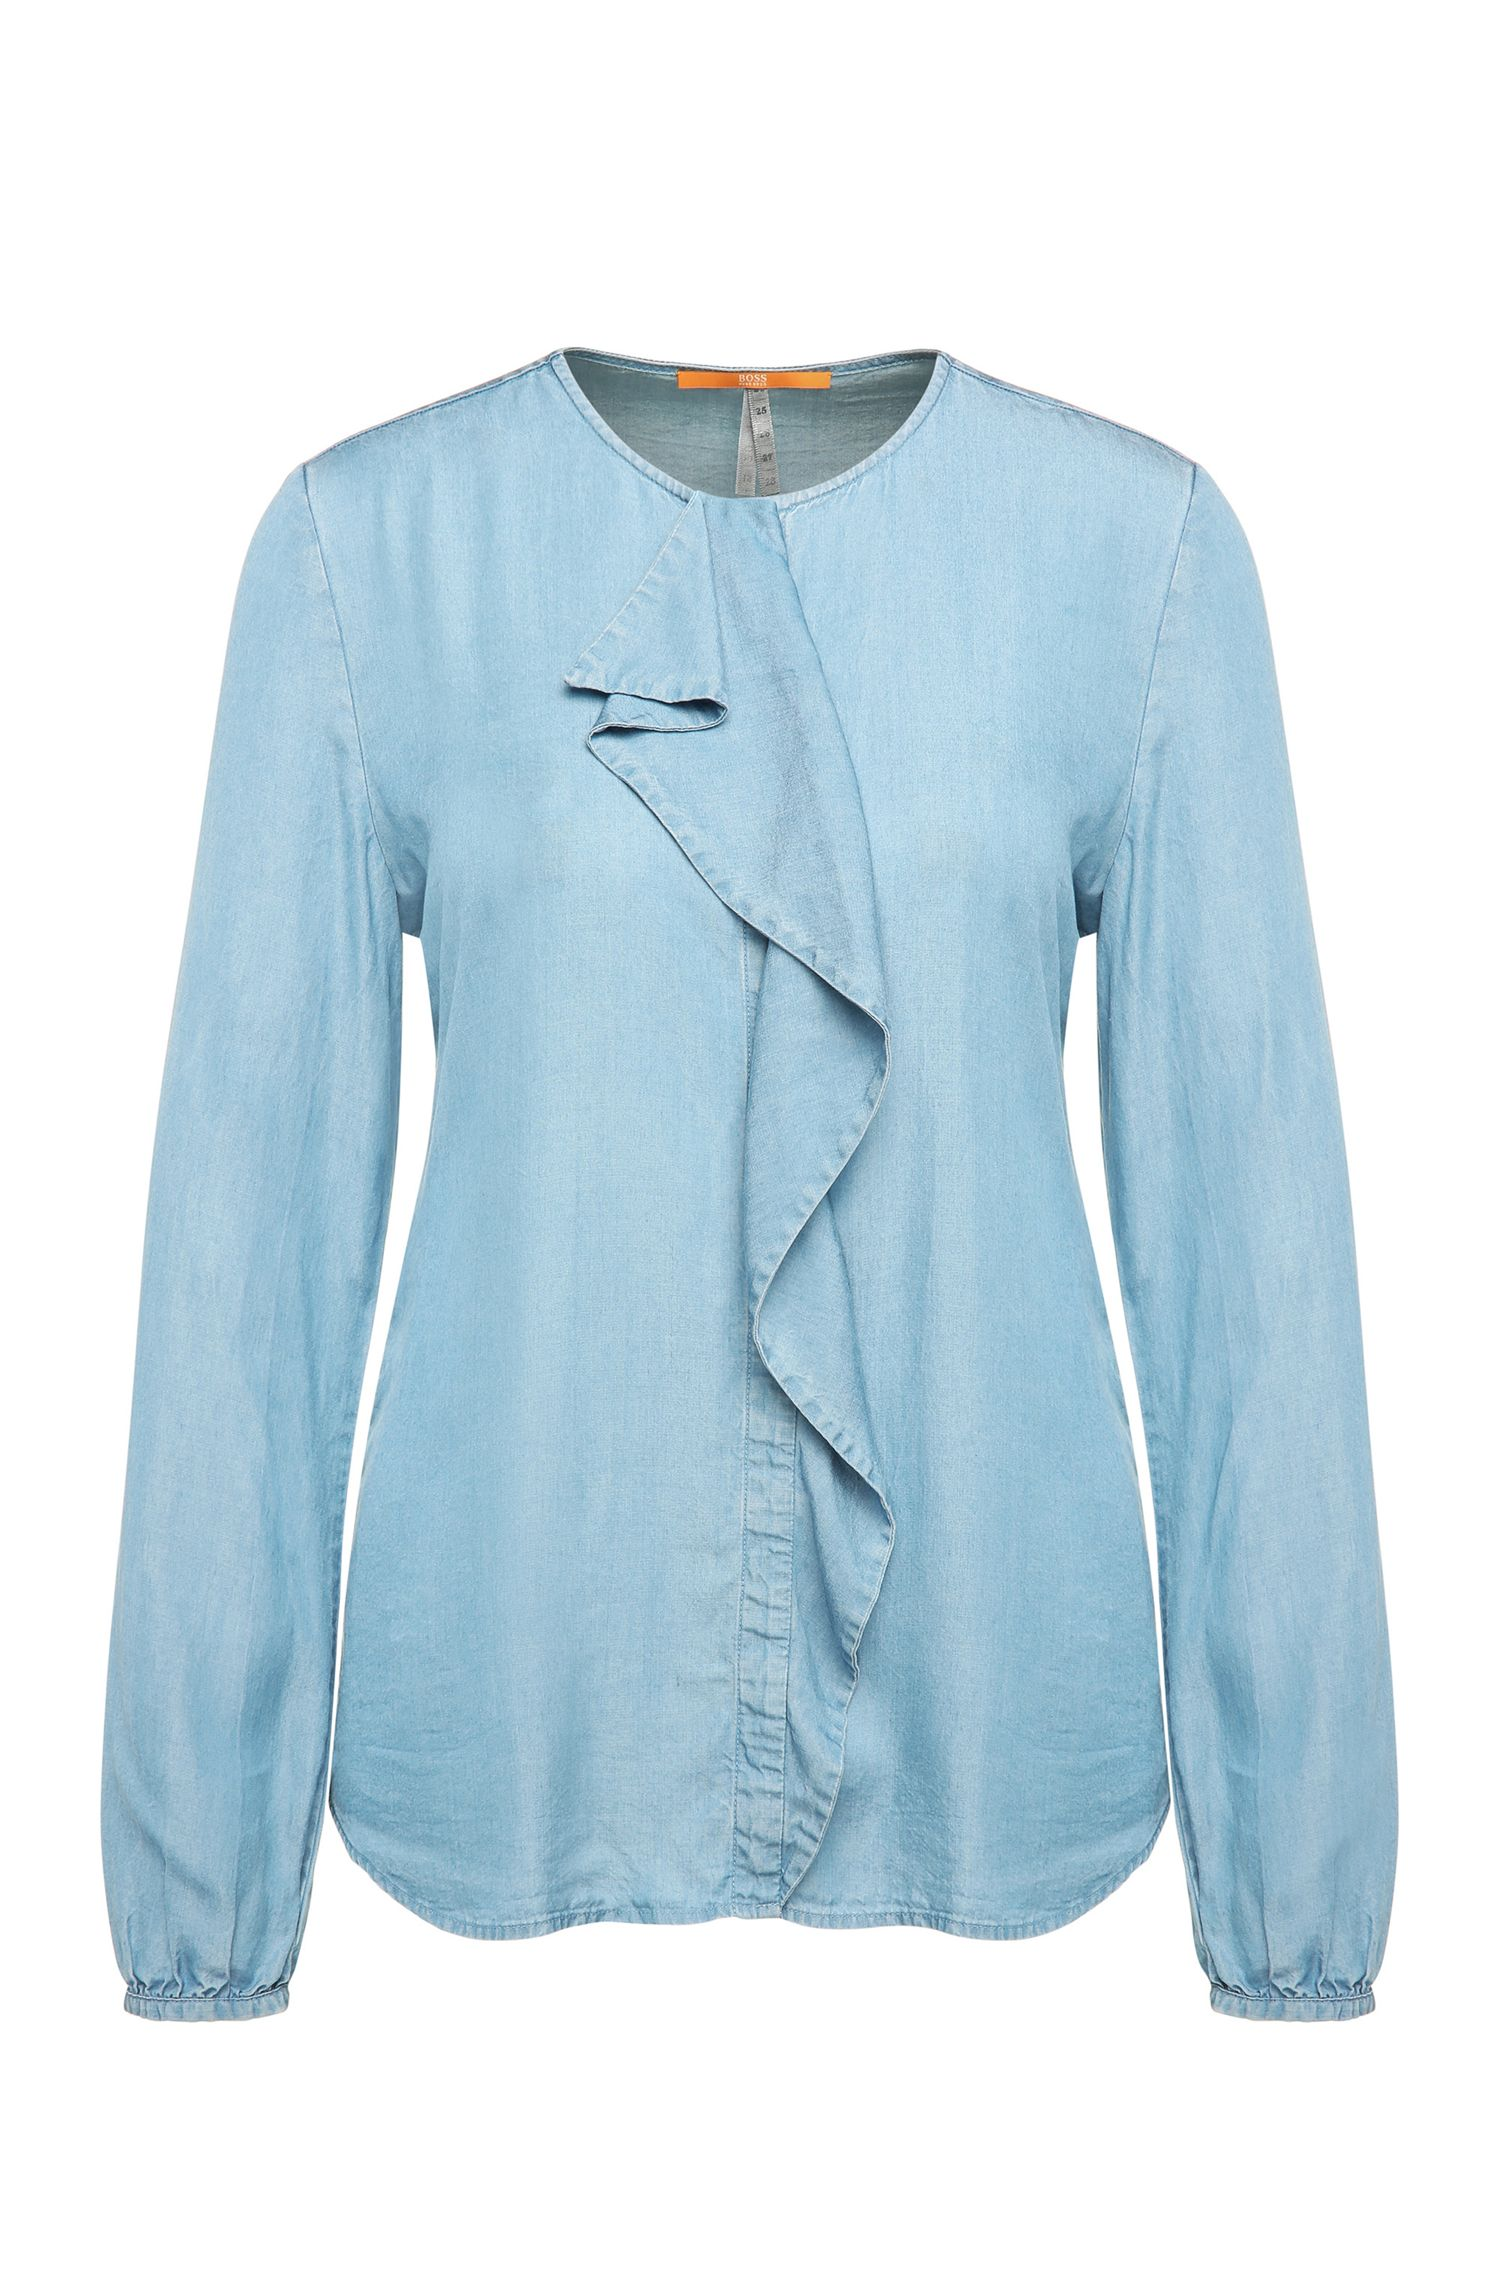 Bluse in Denim-Optik mit Volant: ´Confet`